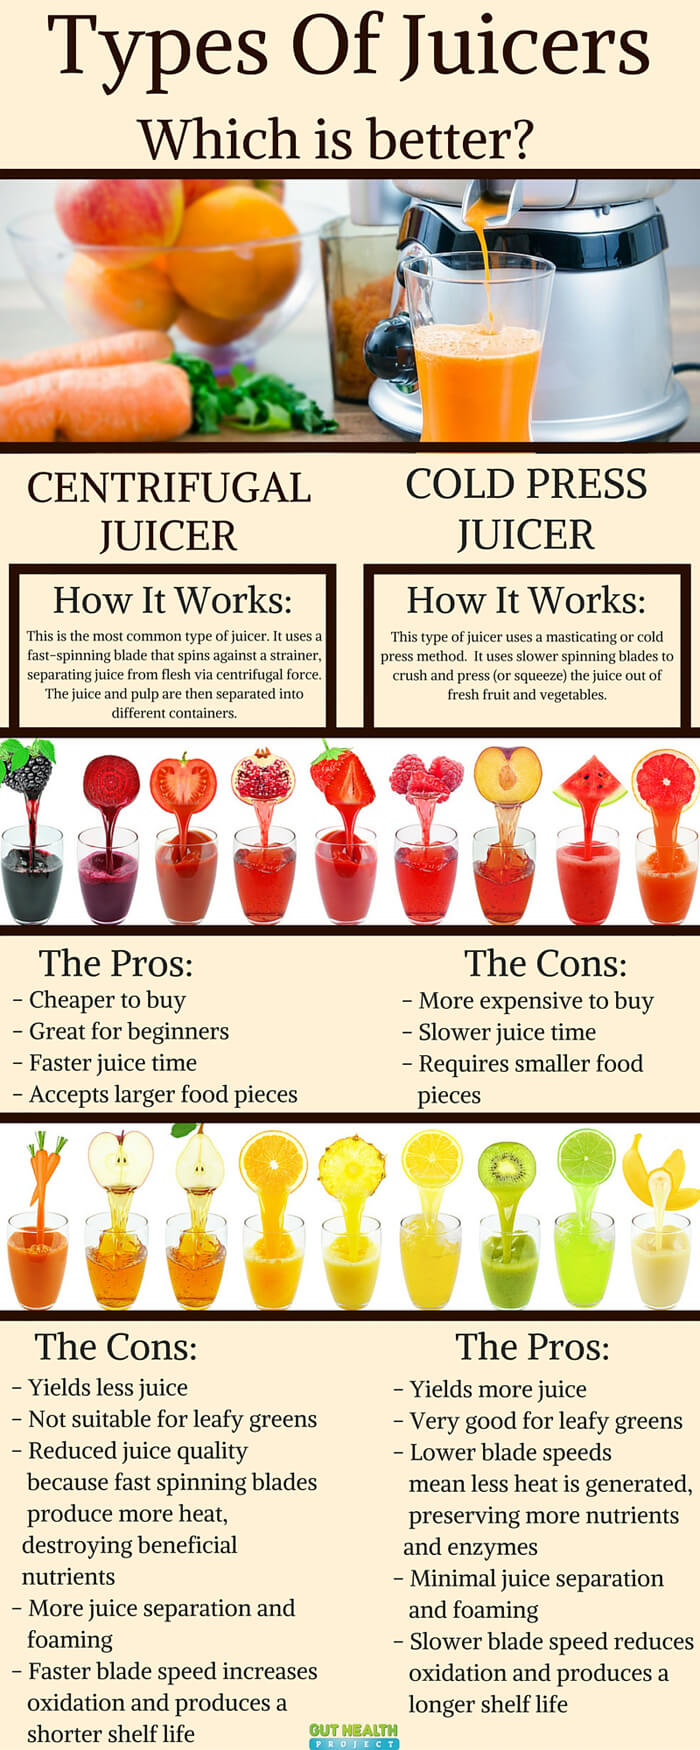 Types Of Juicers (1) copy